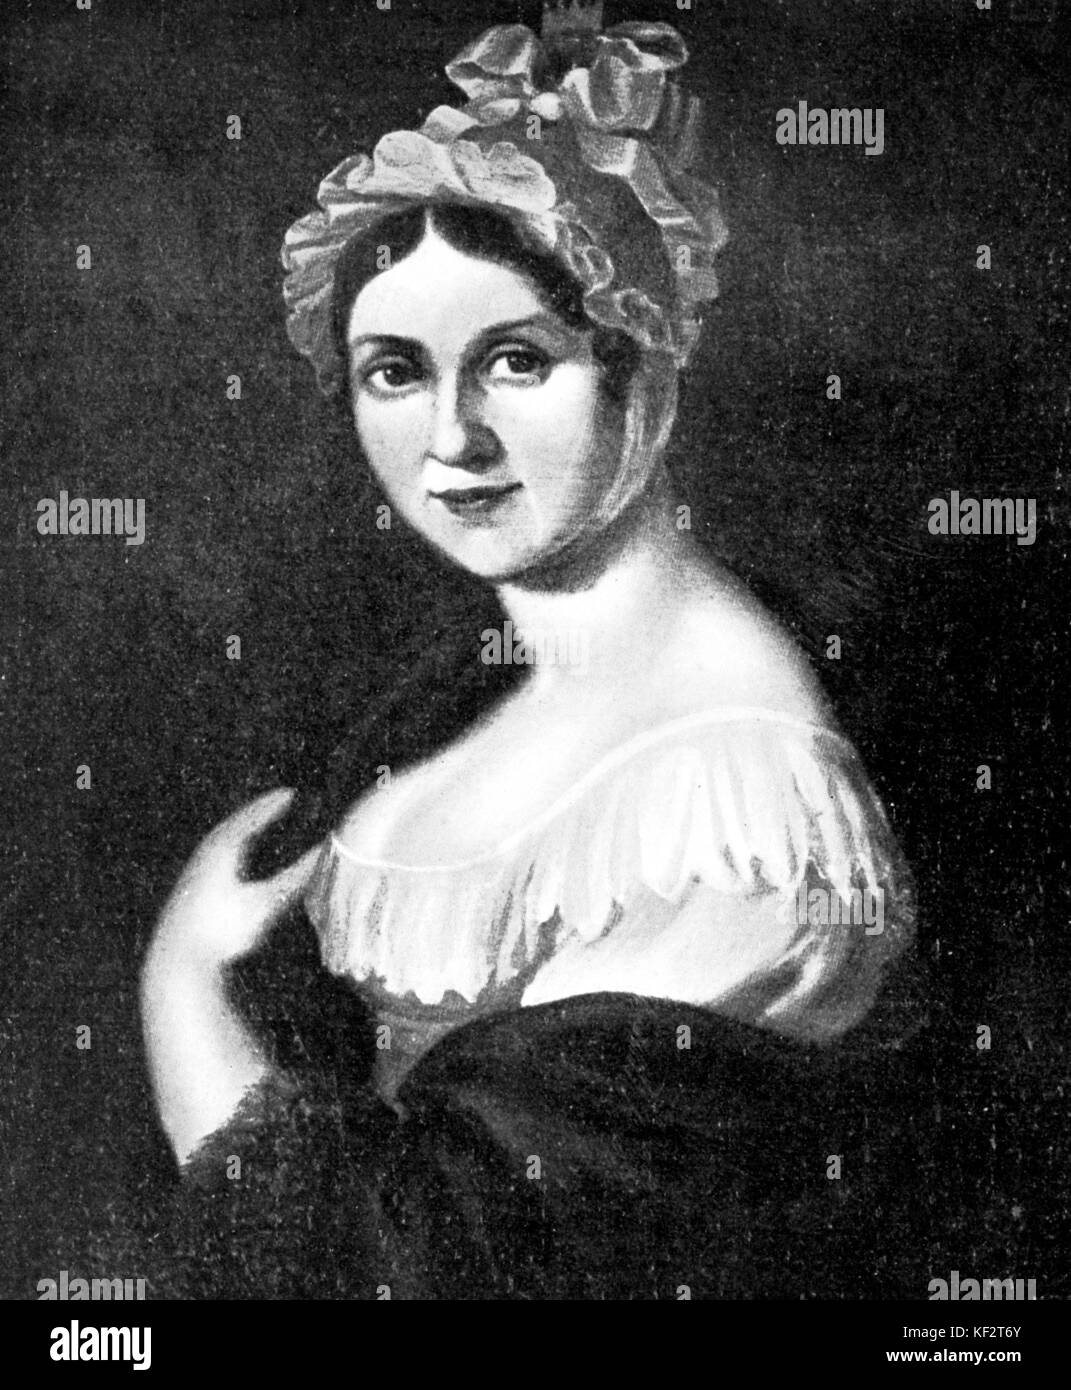 Richard Wagner 's mother Johanna Rosine (formerly Bertz) . RW:German composer & author, 1813-1883 - Stock Image